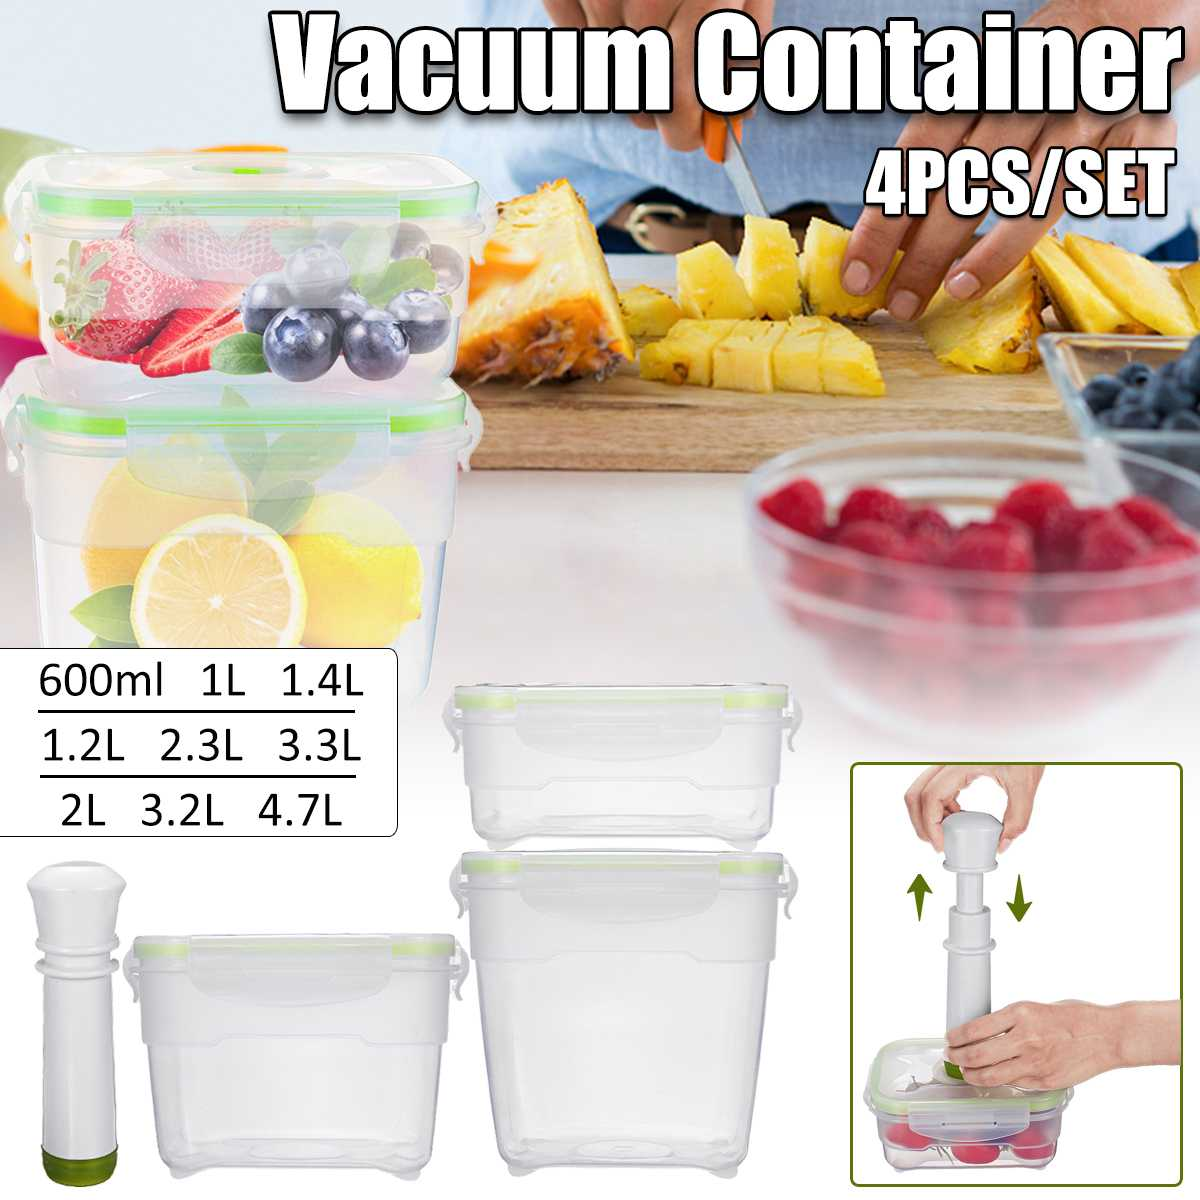 3 Size Vacuum Container Vacuum Pump Large Capacity Vacuum Preservation Box For Refrigerator Kitchen Microwave Oven PP Containers